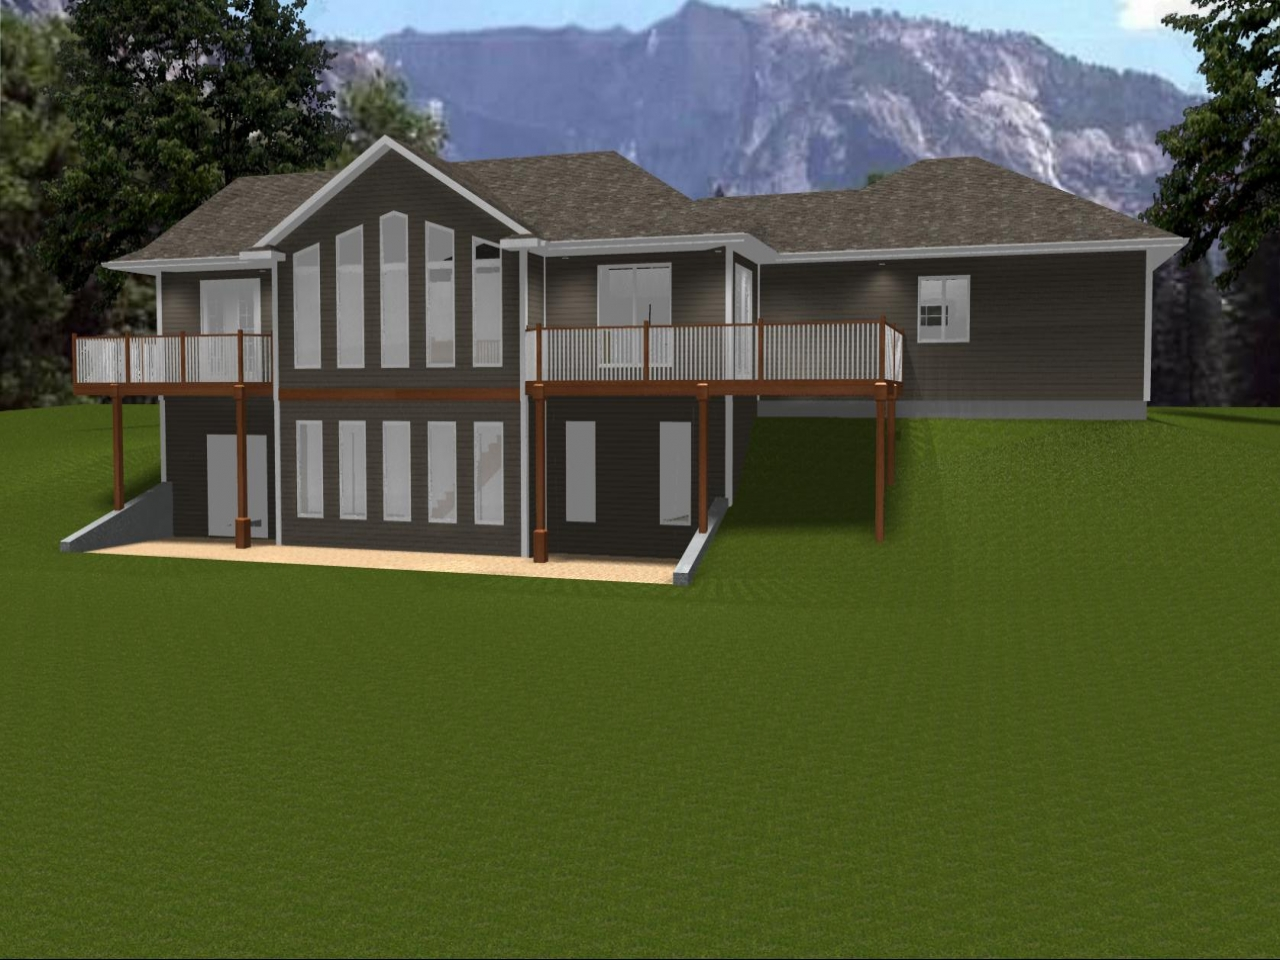 Ranch House Plans with Walkout Basement Ranch House Plans ...